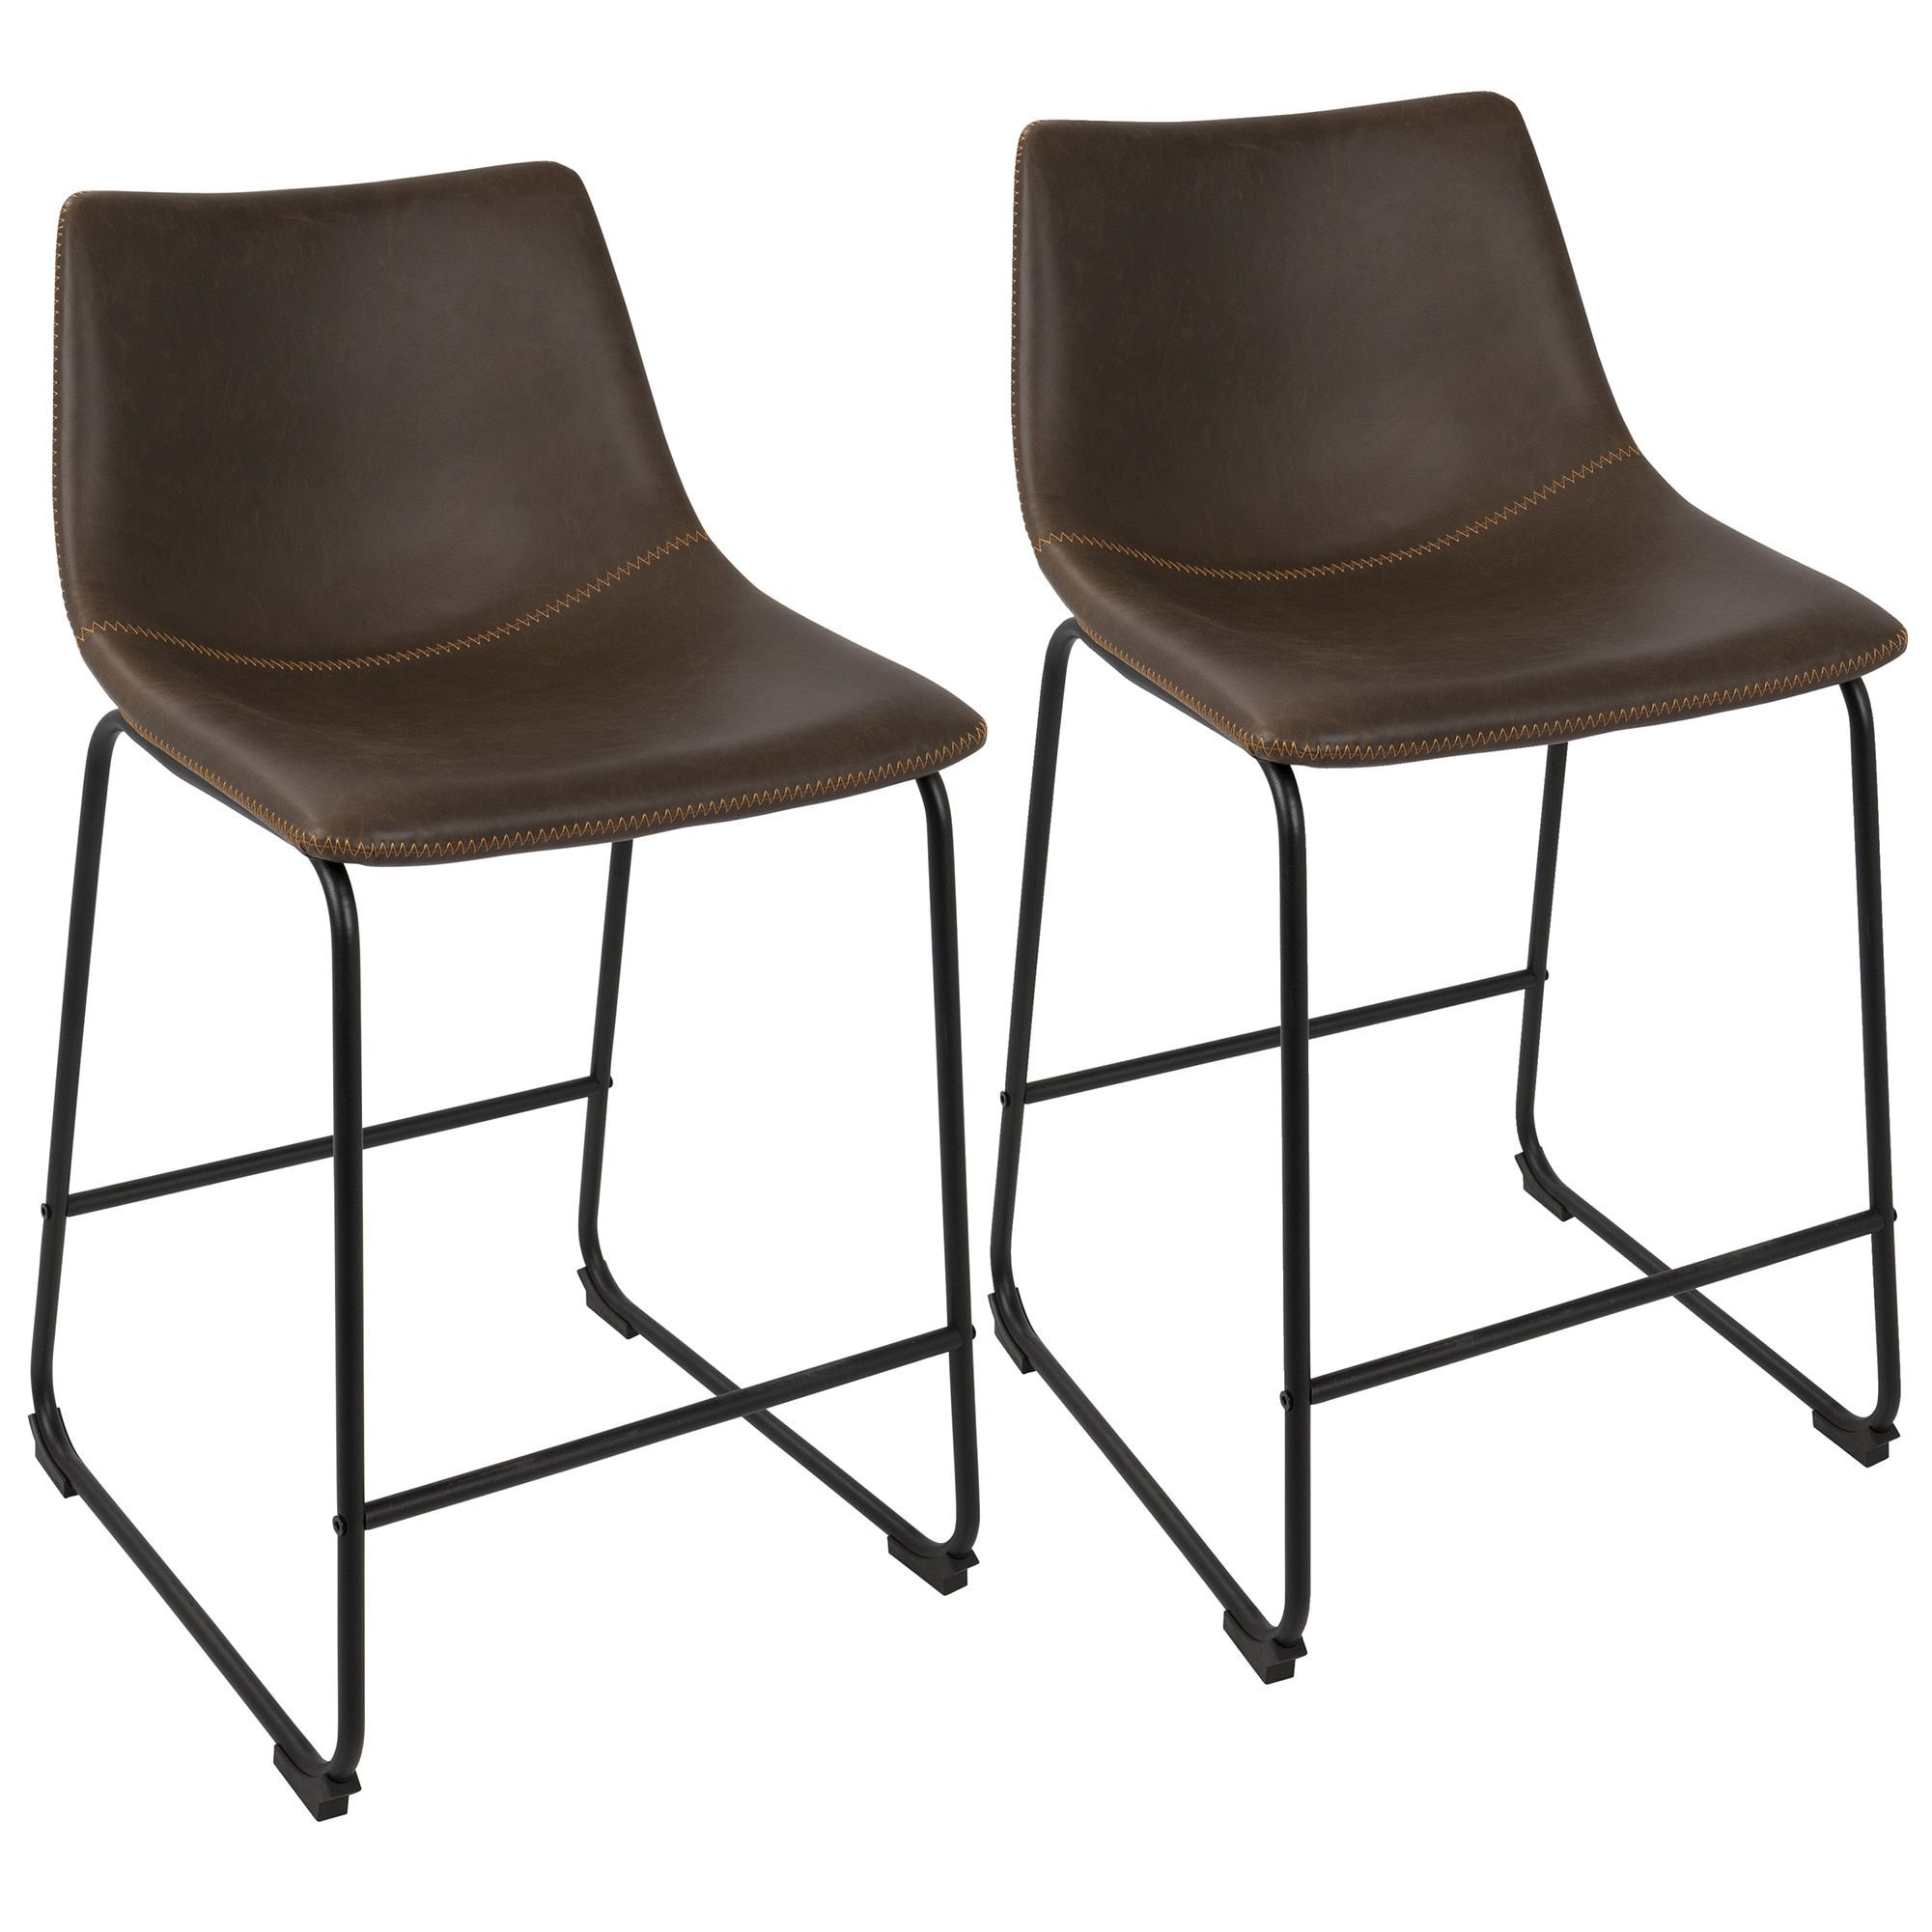 Lumisource Duke Industrial 26 Inch Counter Stool Set Of 2